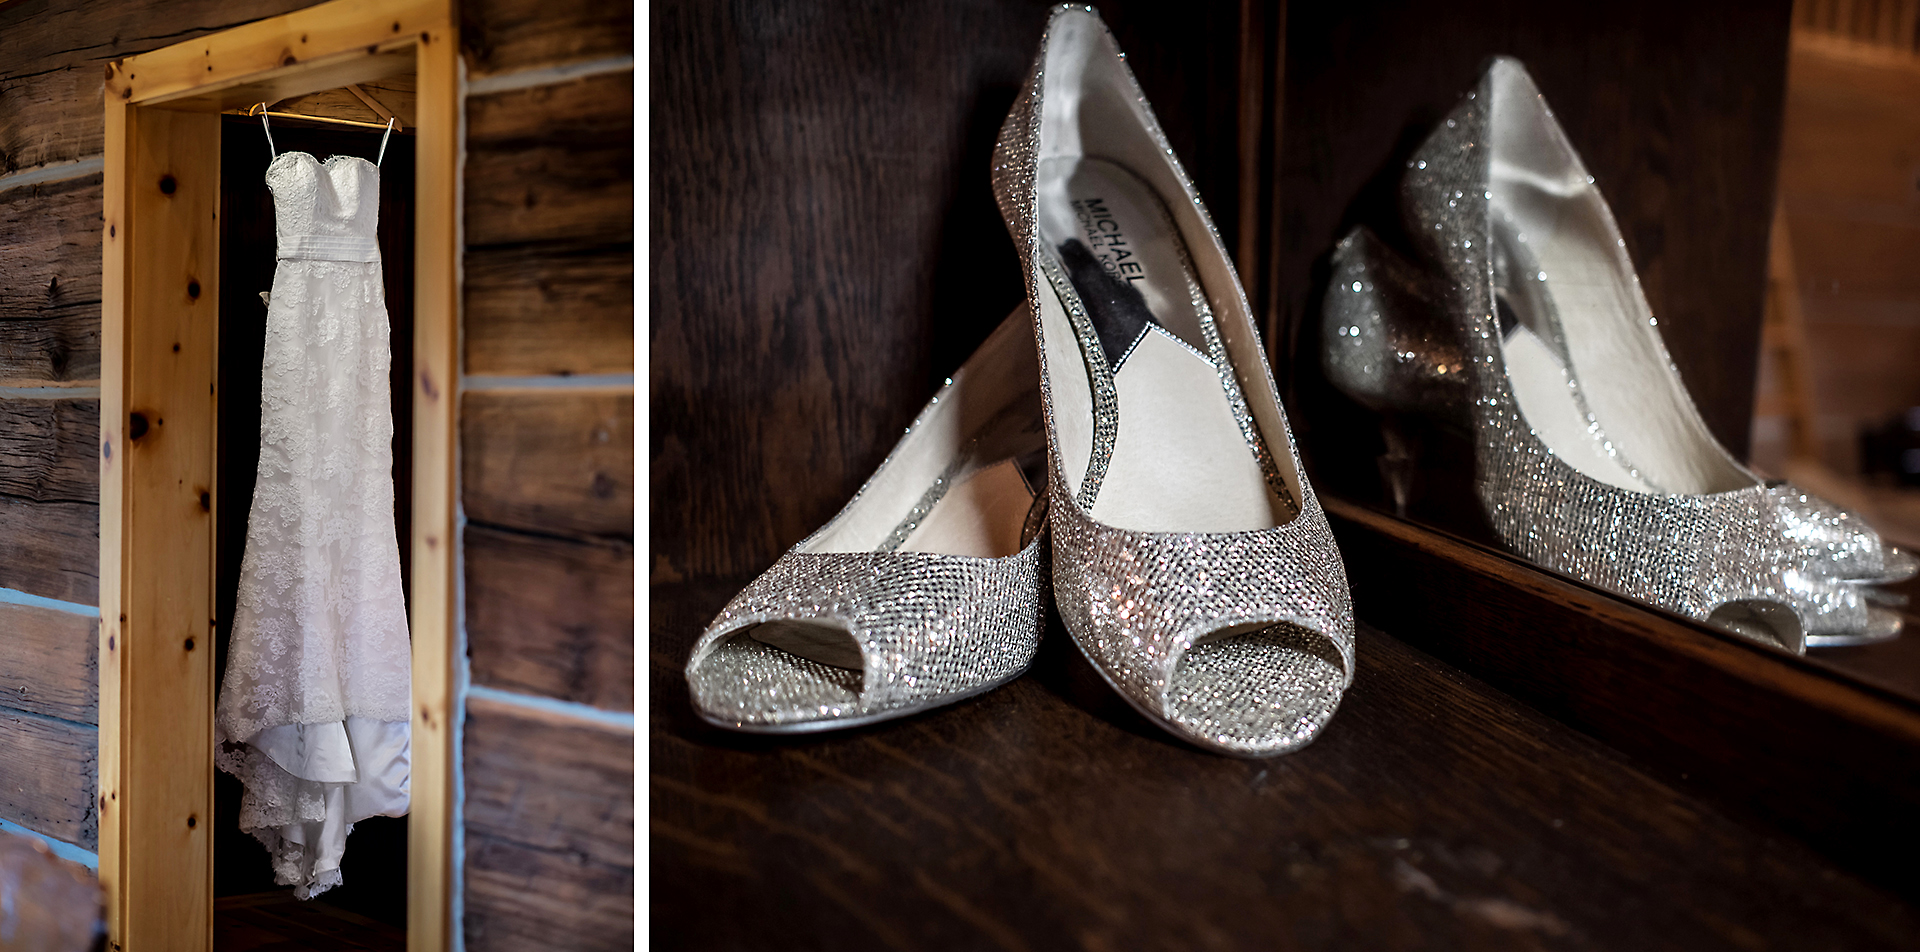 Nathan & Linda | Brooksfield Farms Wedding | Muskoka Wedding Photography05